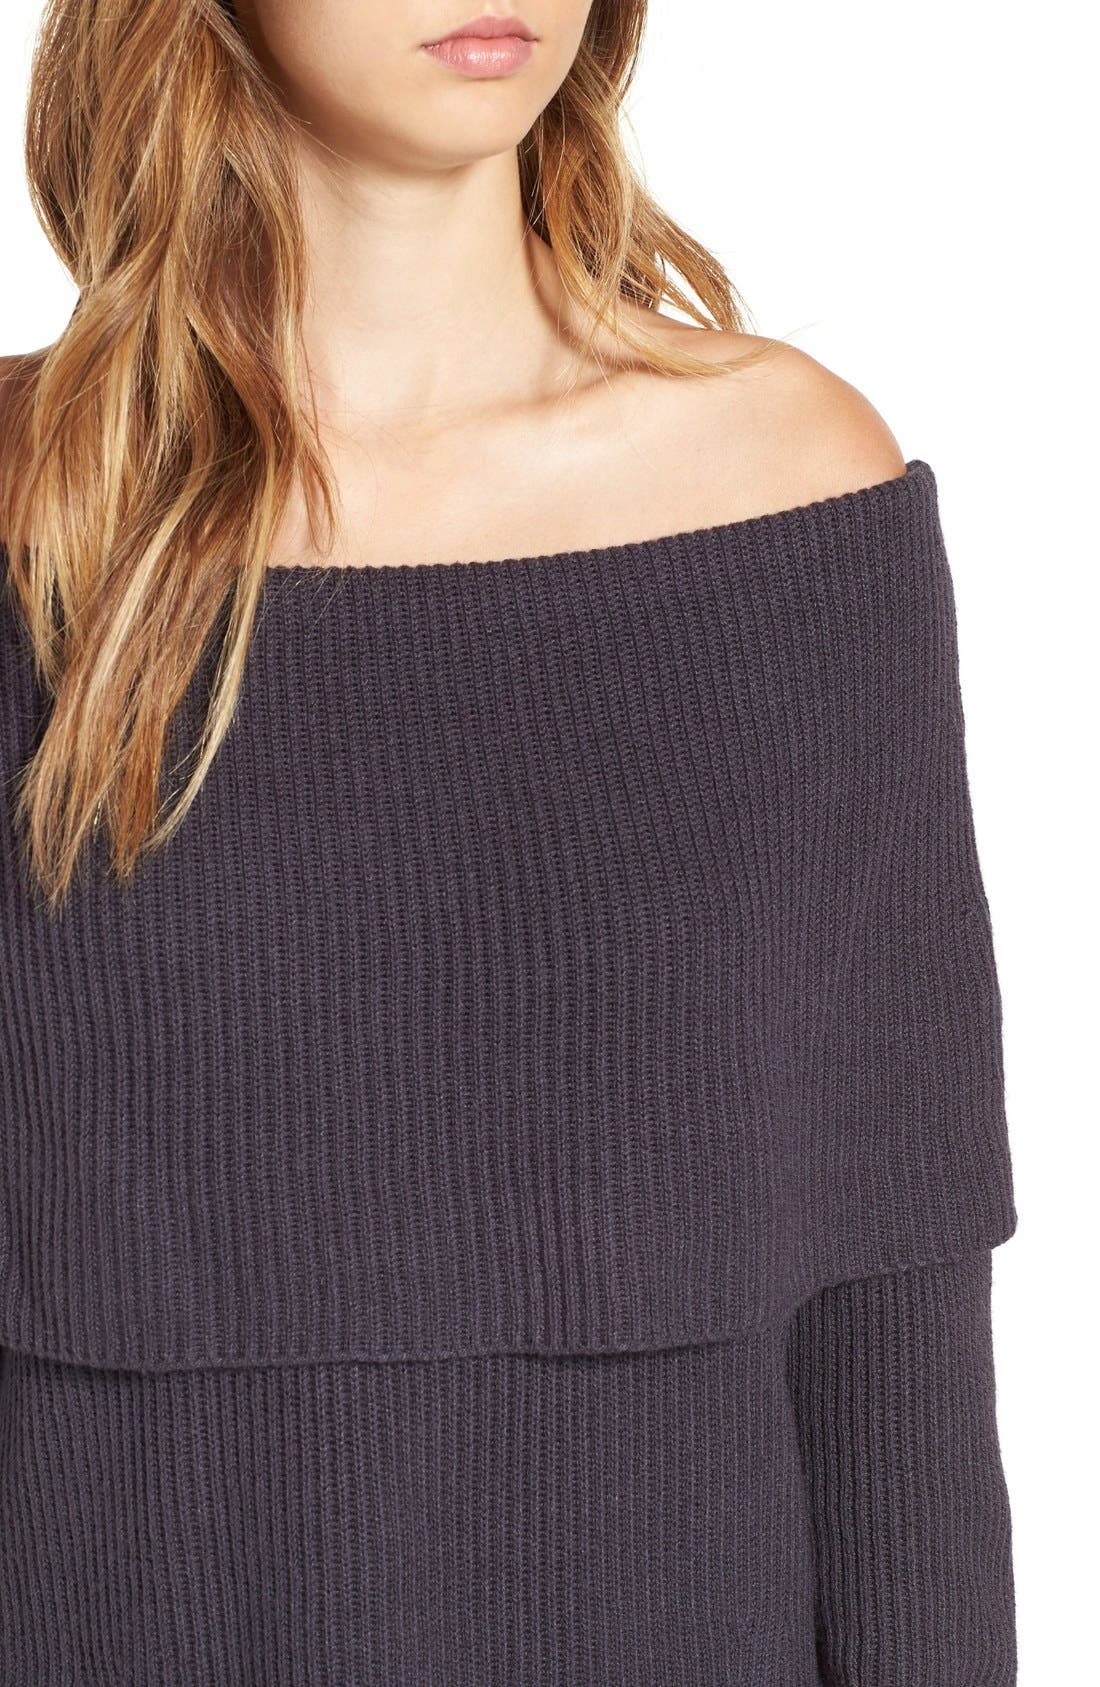 LEITH, Off the Shoulder Knit Sweater, Alternate thumbnail 4, color, 021